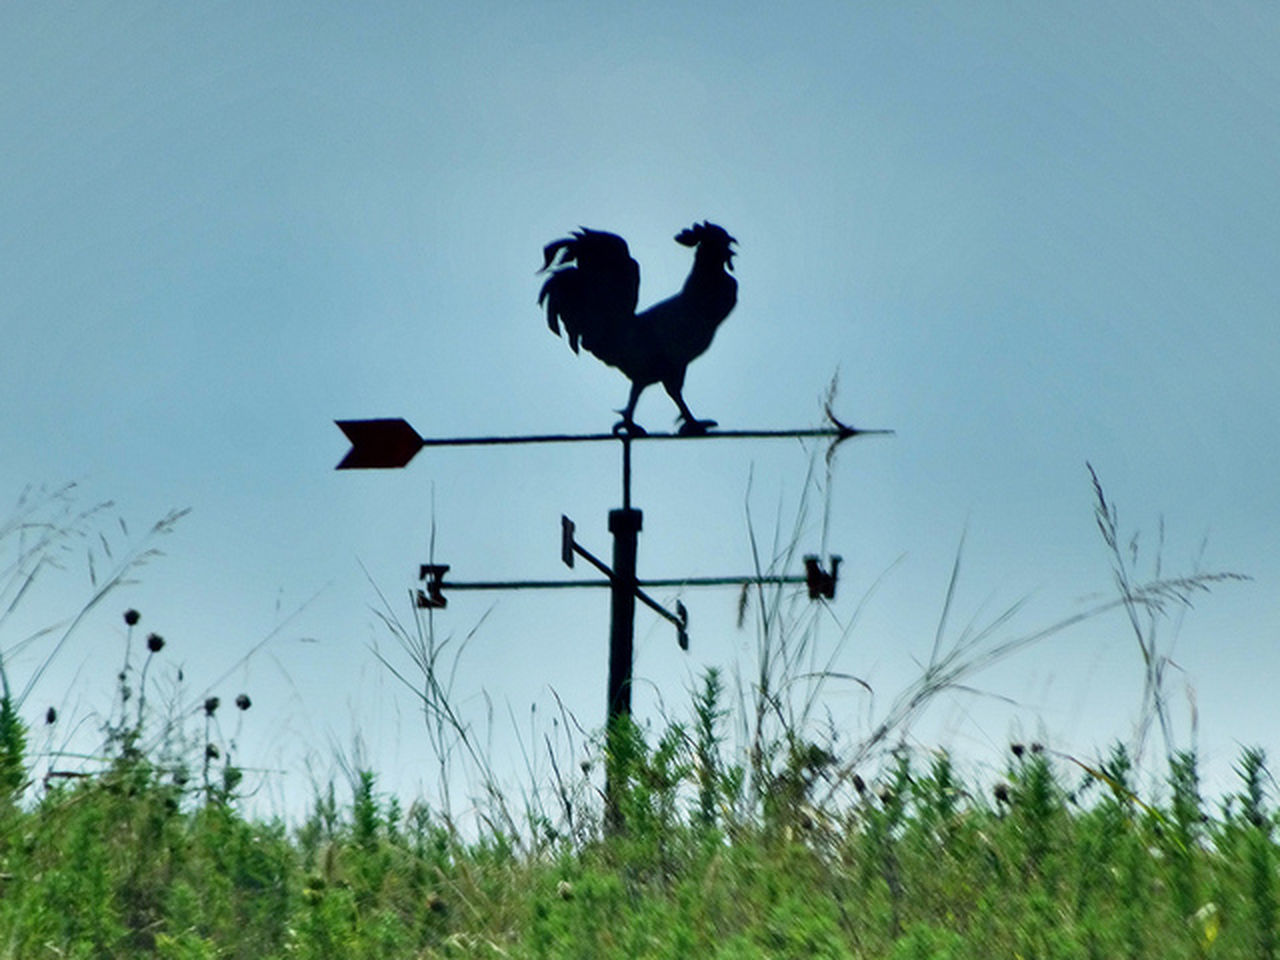 bird, animal themes, animals in the wild, perching, grass, no people, nature, day, outdoors, clear sky, one animal, low angle view, animal wildlife, sky